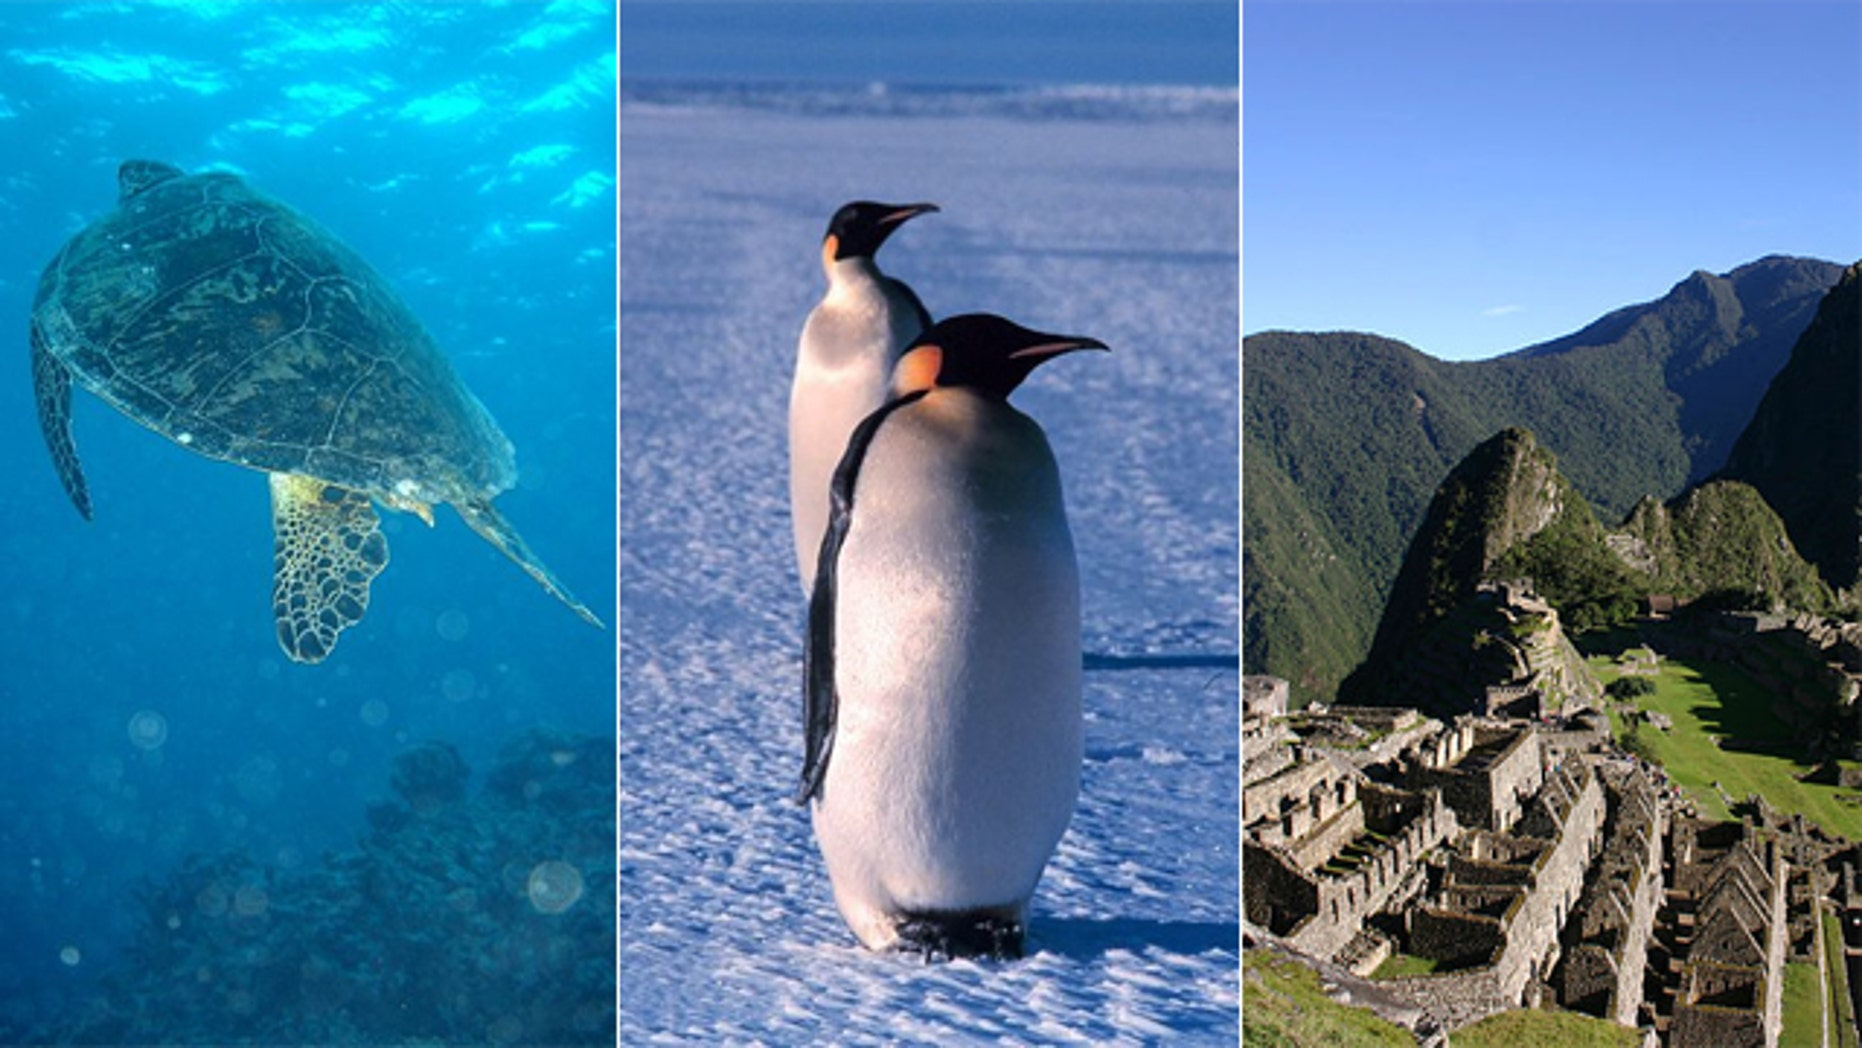 Australia's Great Barrier Reef, the Antarctica and Machu Picchu all suffer from environmental pressures.